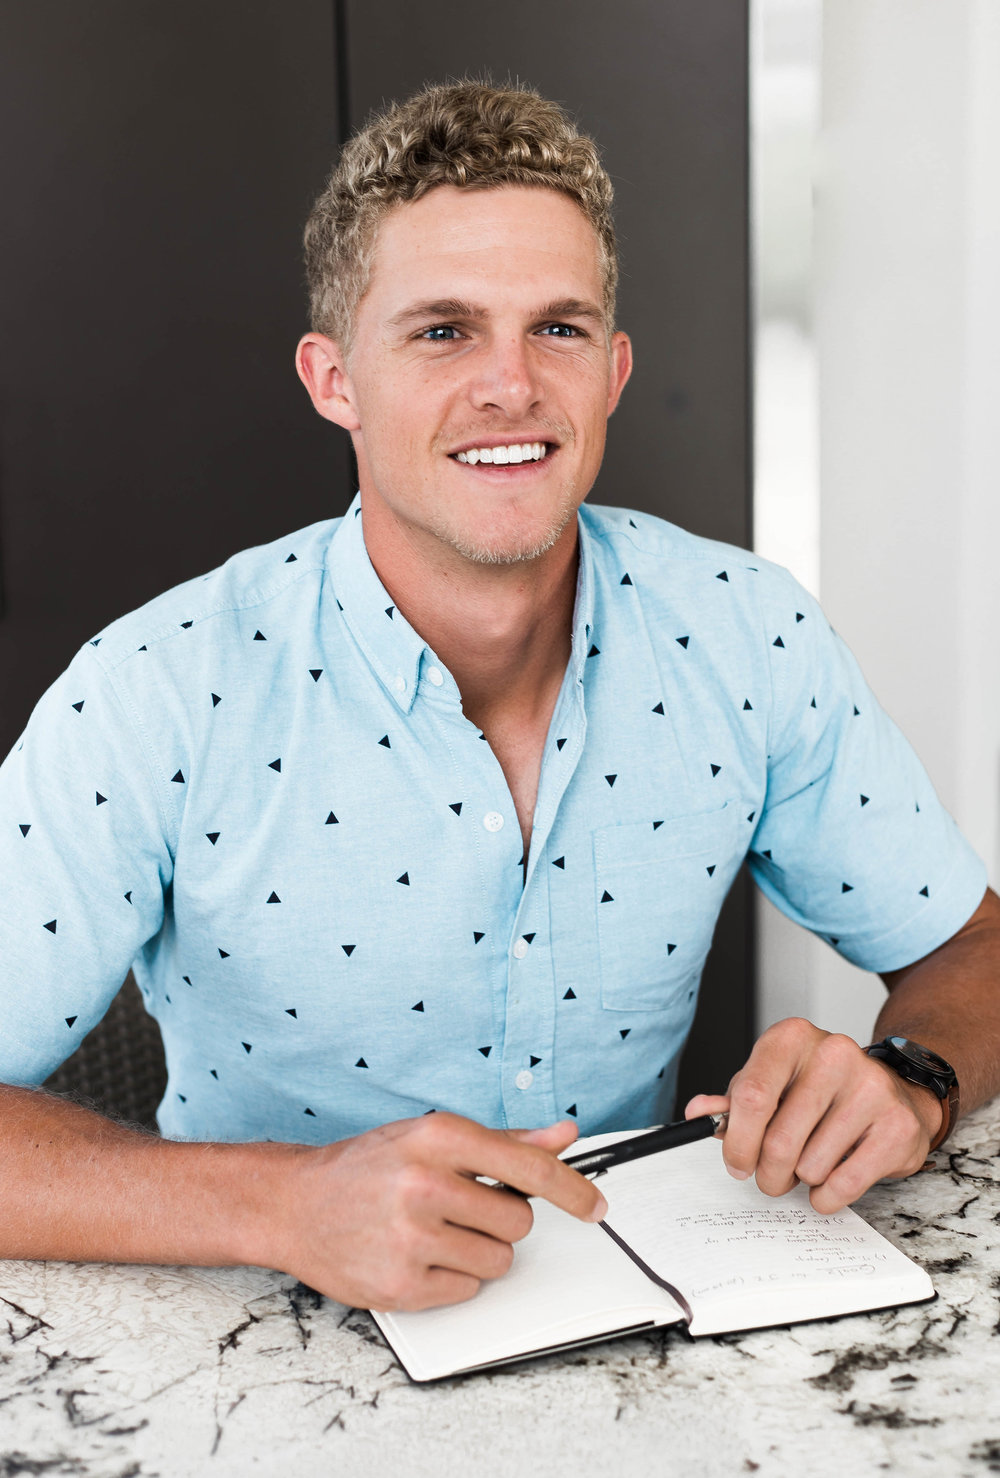 A former professional golfer, Thane is charting a new path as an up-and-coming writer, podcaster, model, and collaborative entrepreneur in the greater Los Angeles area.